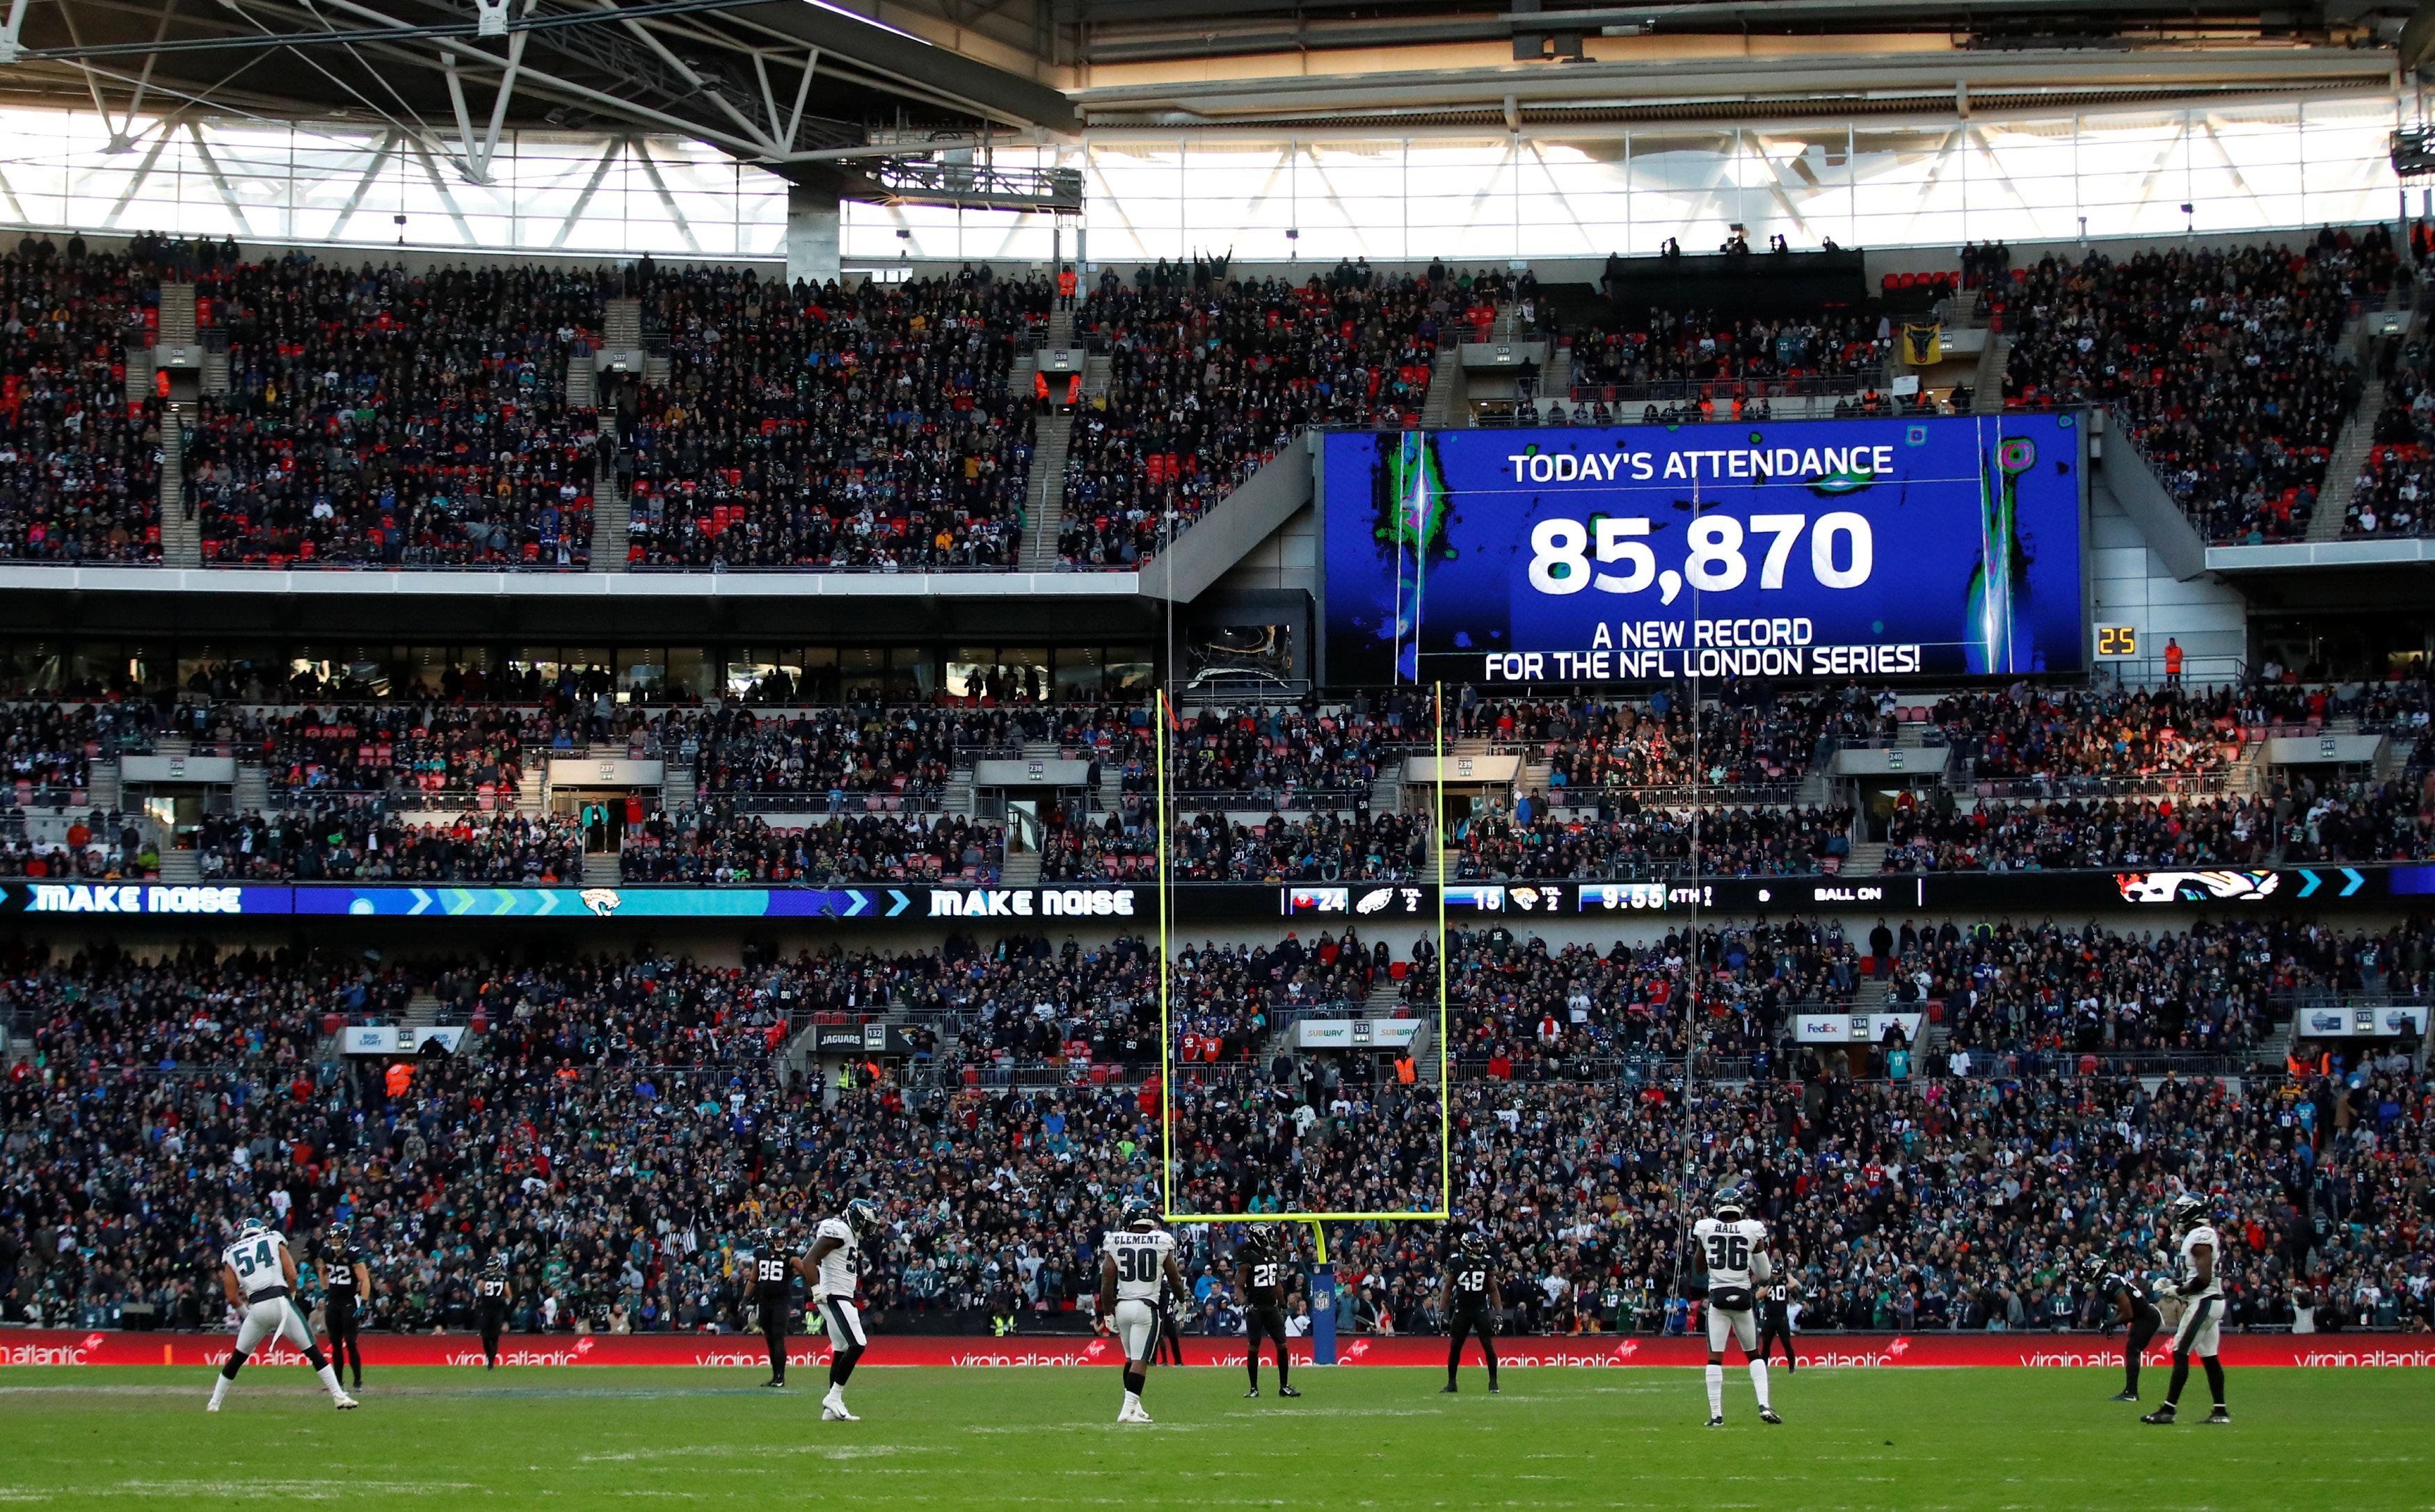 Today's game broke the NFL London record, with 85,870 in attendance